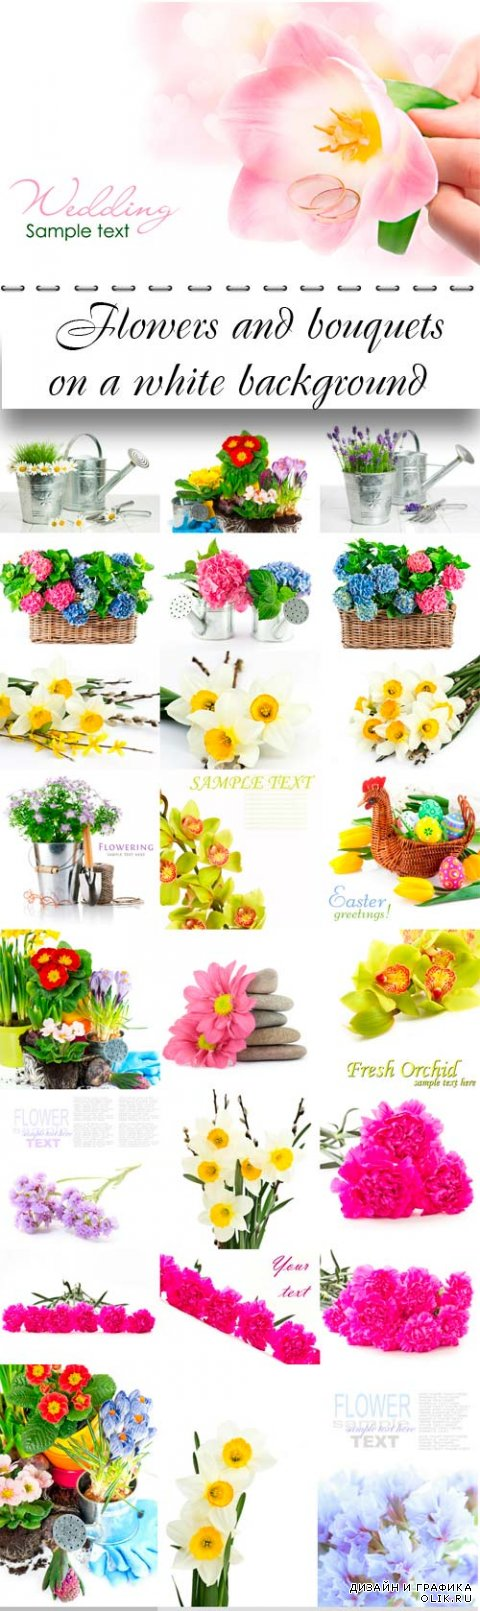 Flowers and bouquets on a white background